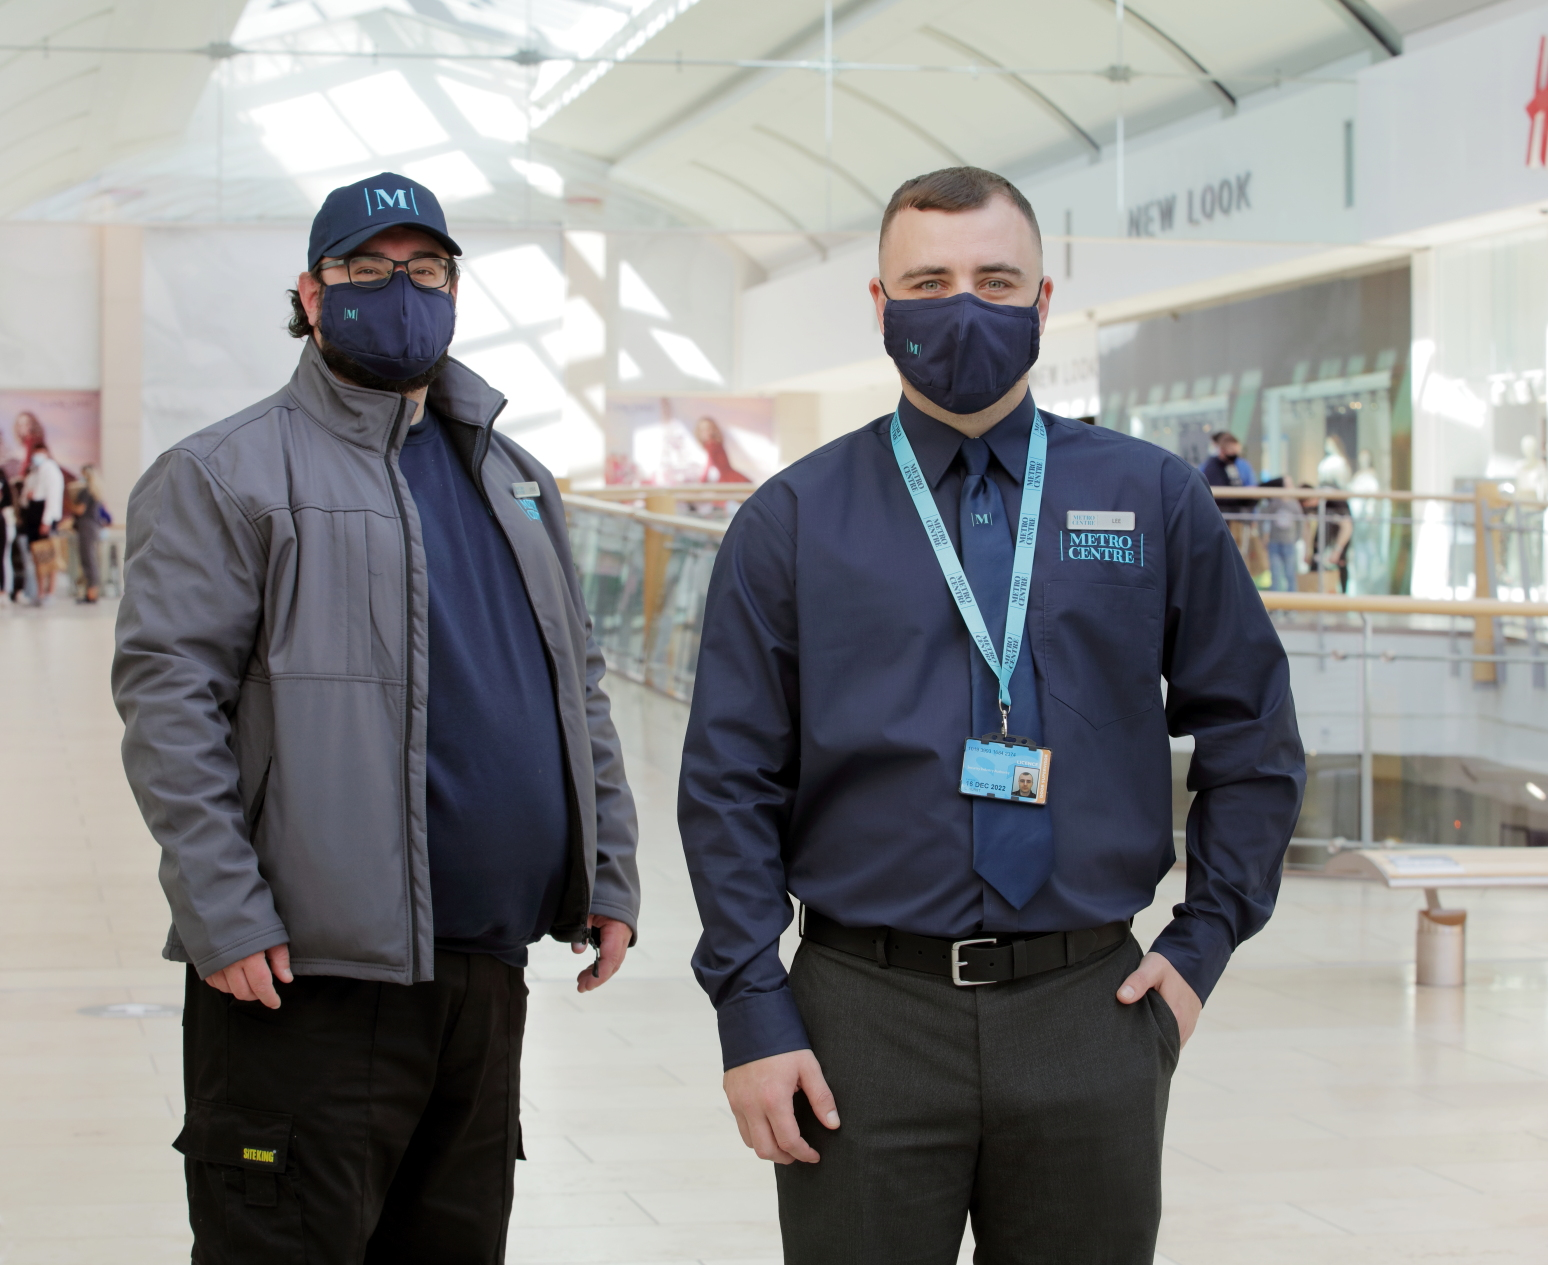 Two Metrocentre staff, both wearing masks. One is wearing a dark blue shirt with a lanyard around their neck with one hand in their suit trouser pocket. The other is wearing a cap and grey jacket